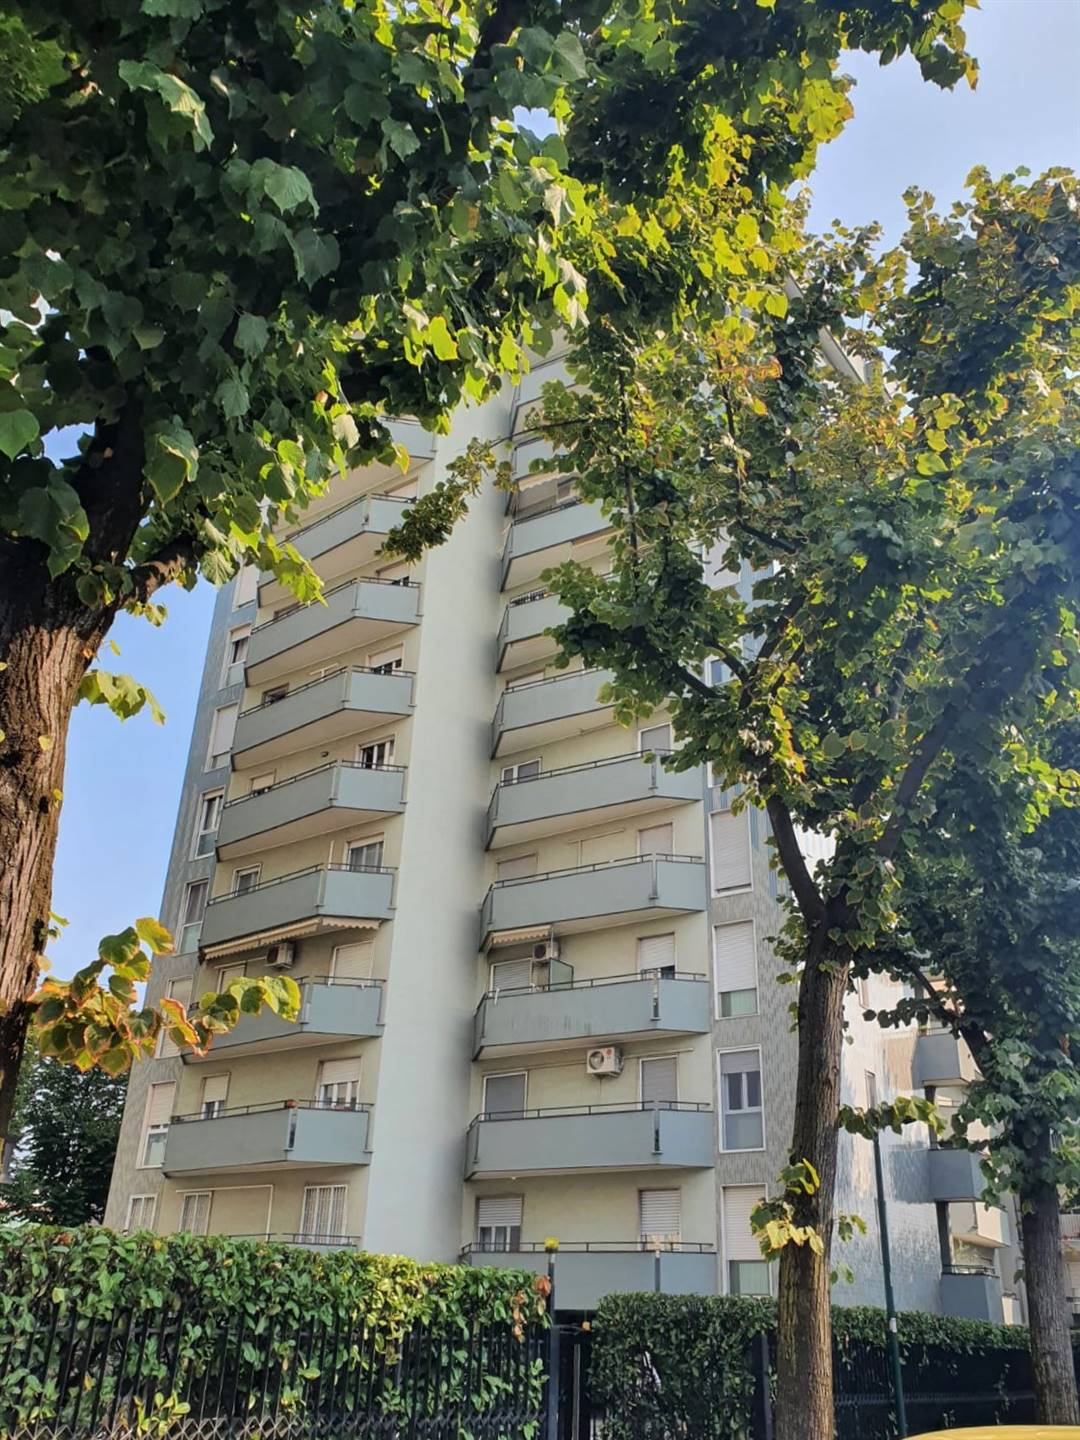 SESTO SAN GIOVANNI, Apartment for sale, Good condition, Heating Centralized, Energetic class: G, Epi: 175 kwh/m2 year, placed at 8° on 10, composed